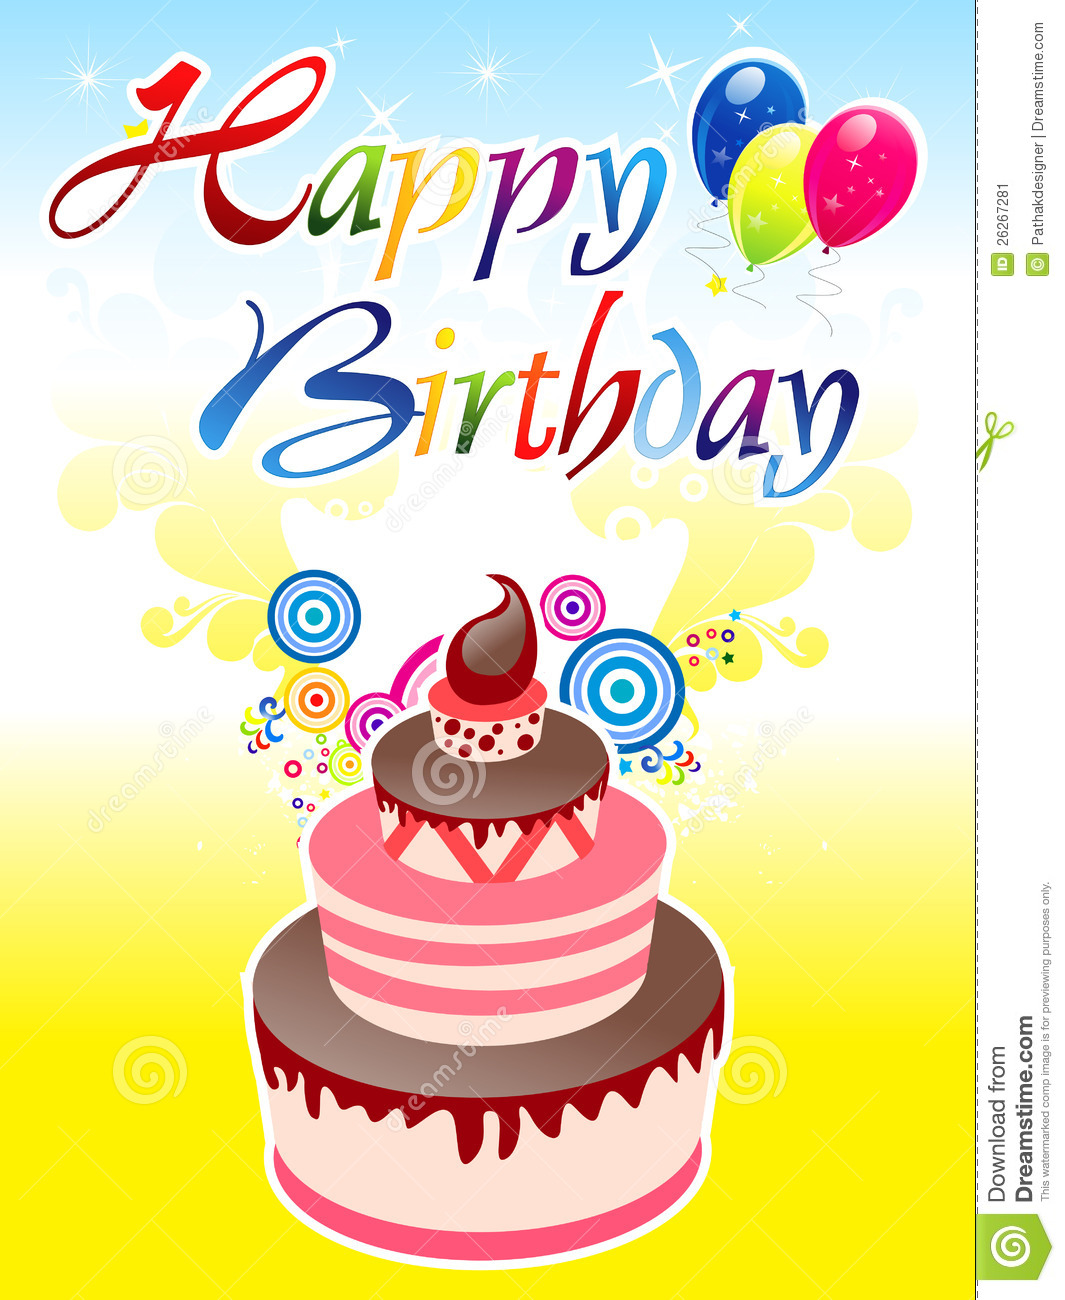 More similar stock images of ` Abstract birthday background `